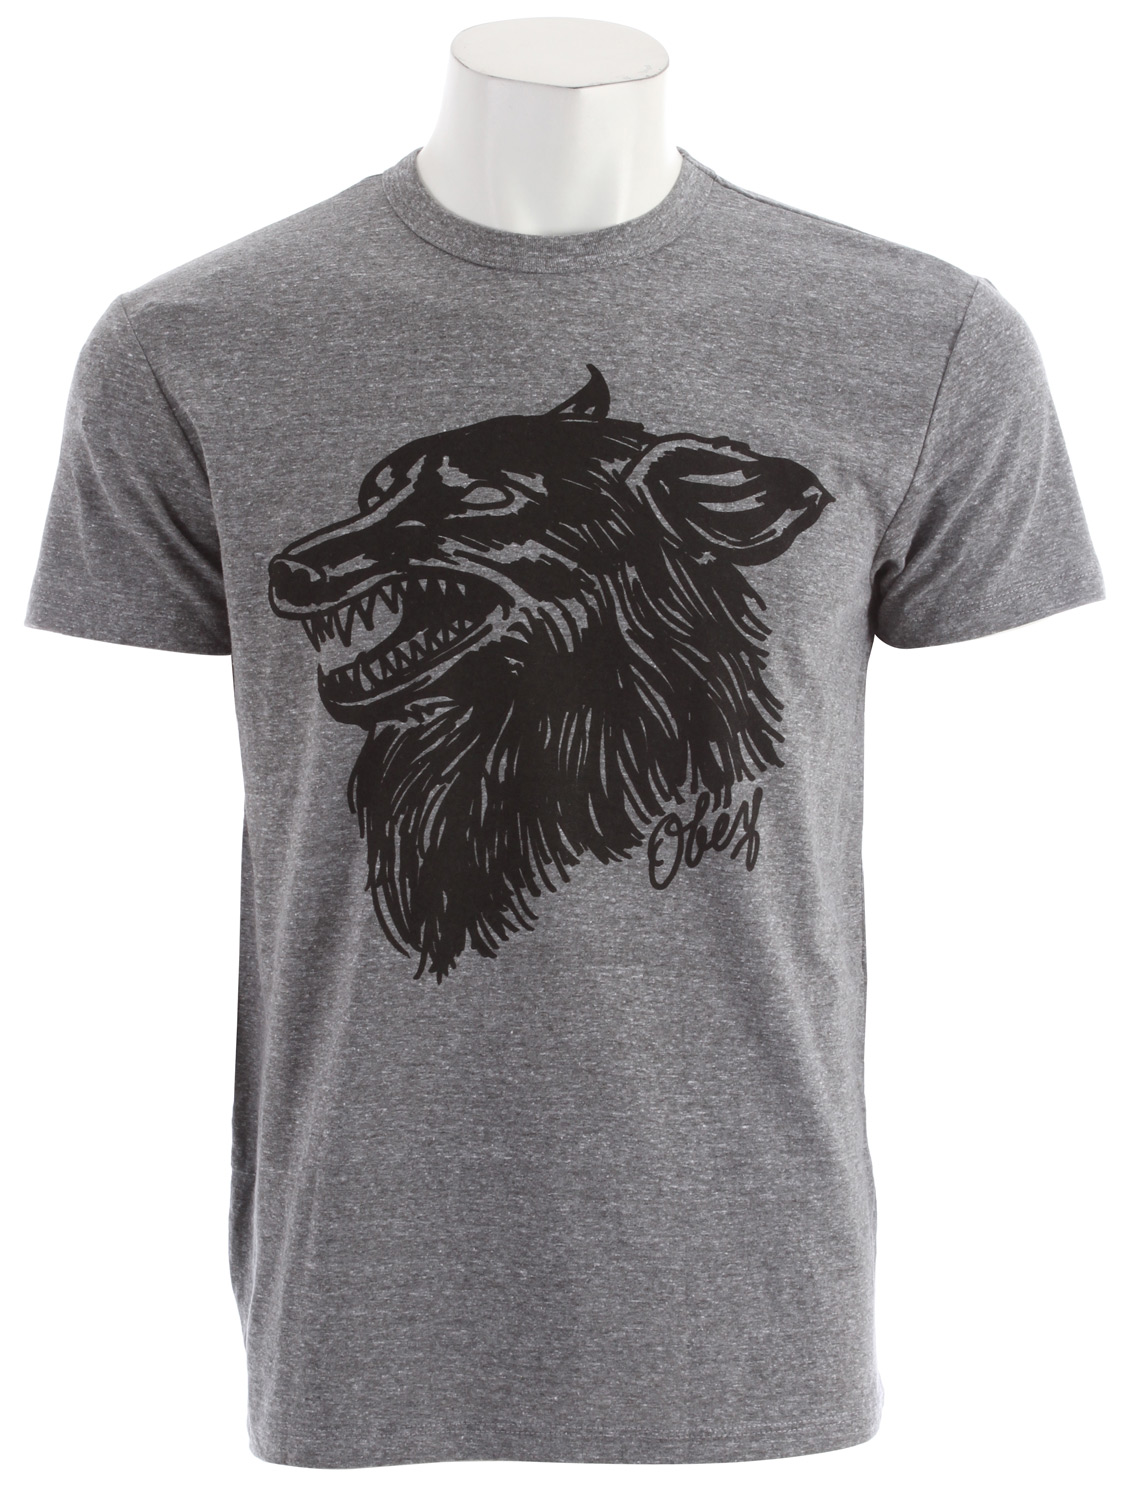 Key Features of the Obey Hell Hound Tri-Blend T-Shirt: Light weight slim fit tri tee with heather pattern and rib neck binding 50% Polyester / 25% Cotton / 25% Rayon - $30.95